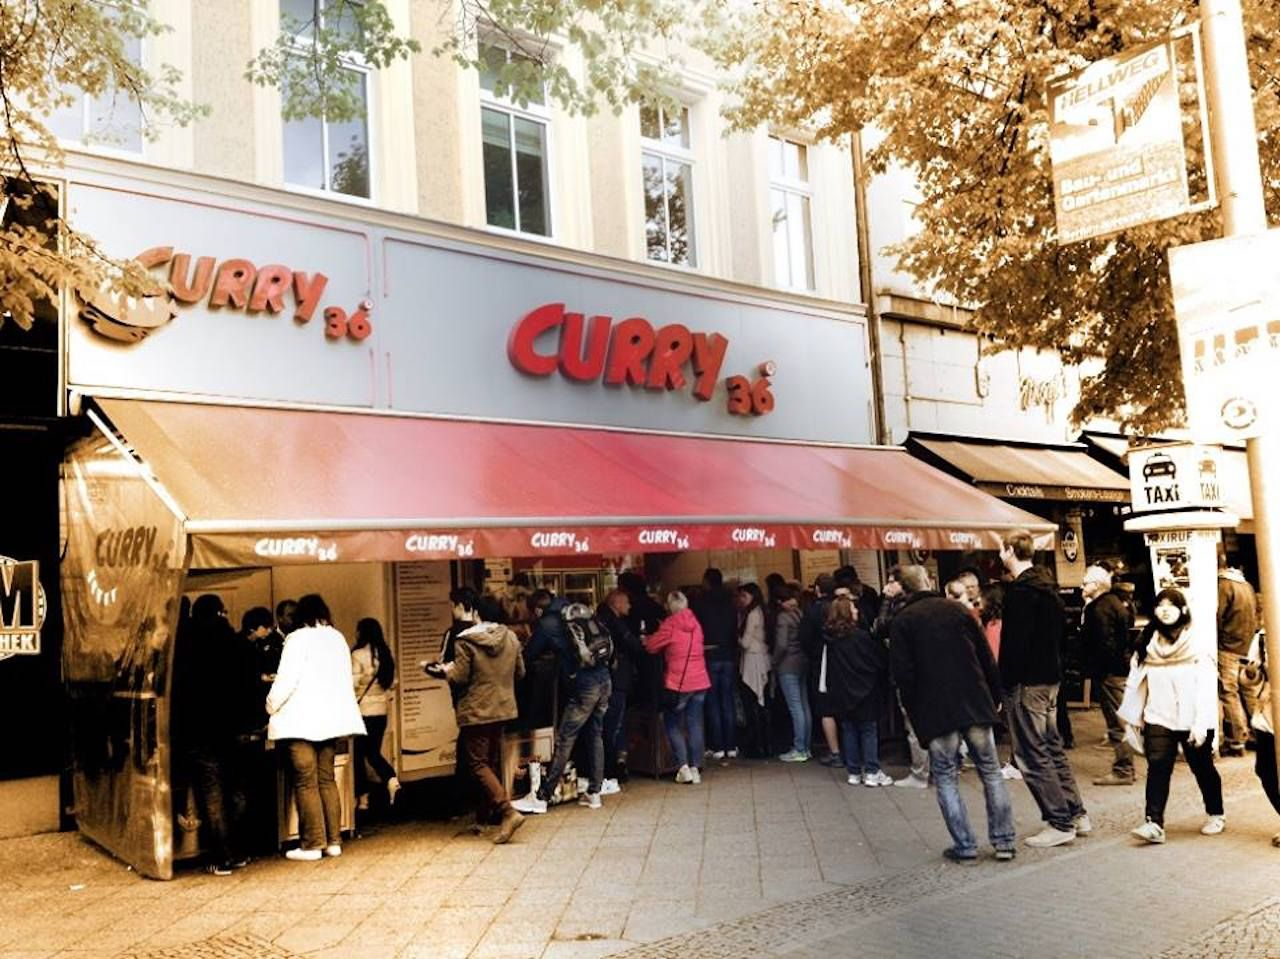 Curry 36 currywurst stand in Berlin